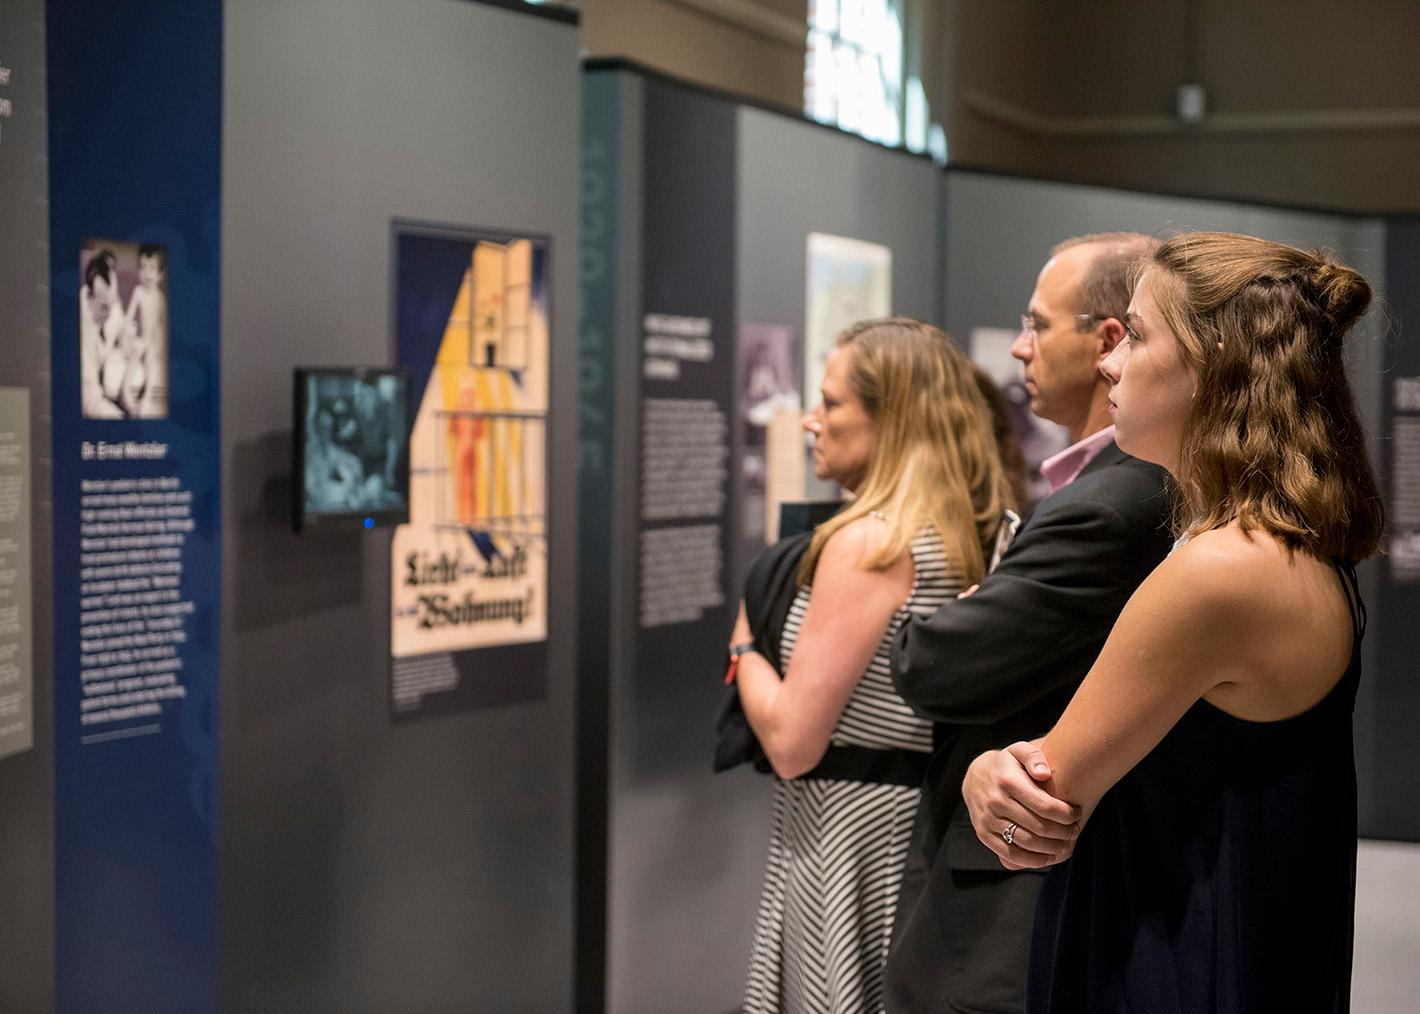 Visitors viewing Deadly Medicine: Creating the Master Race. The exhibition was produced by the USHMM and traveled to the Reece Museum the fall of 2017.